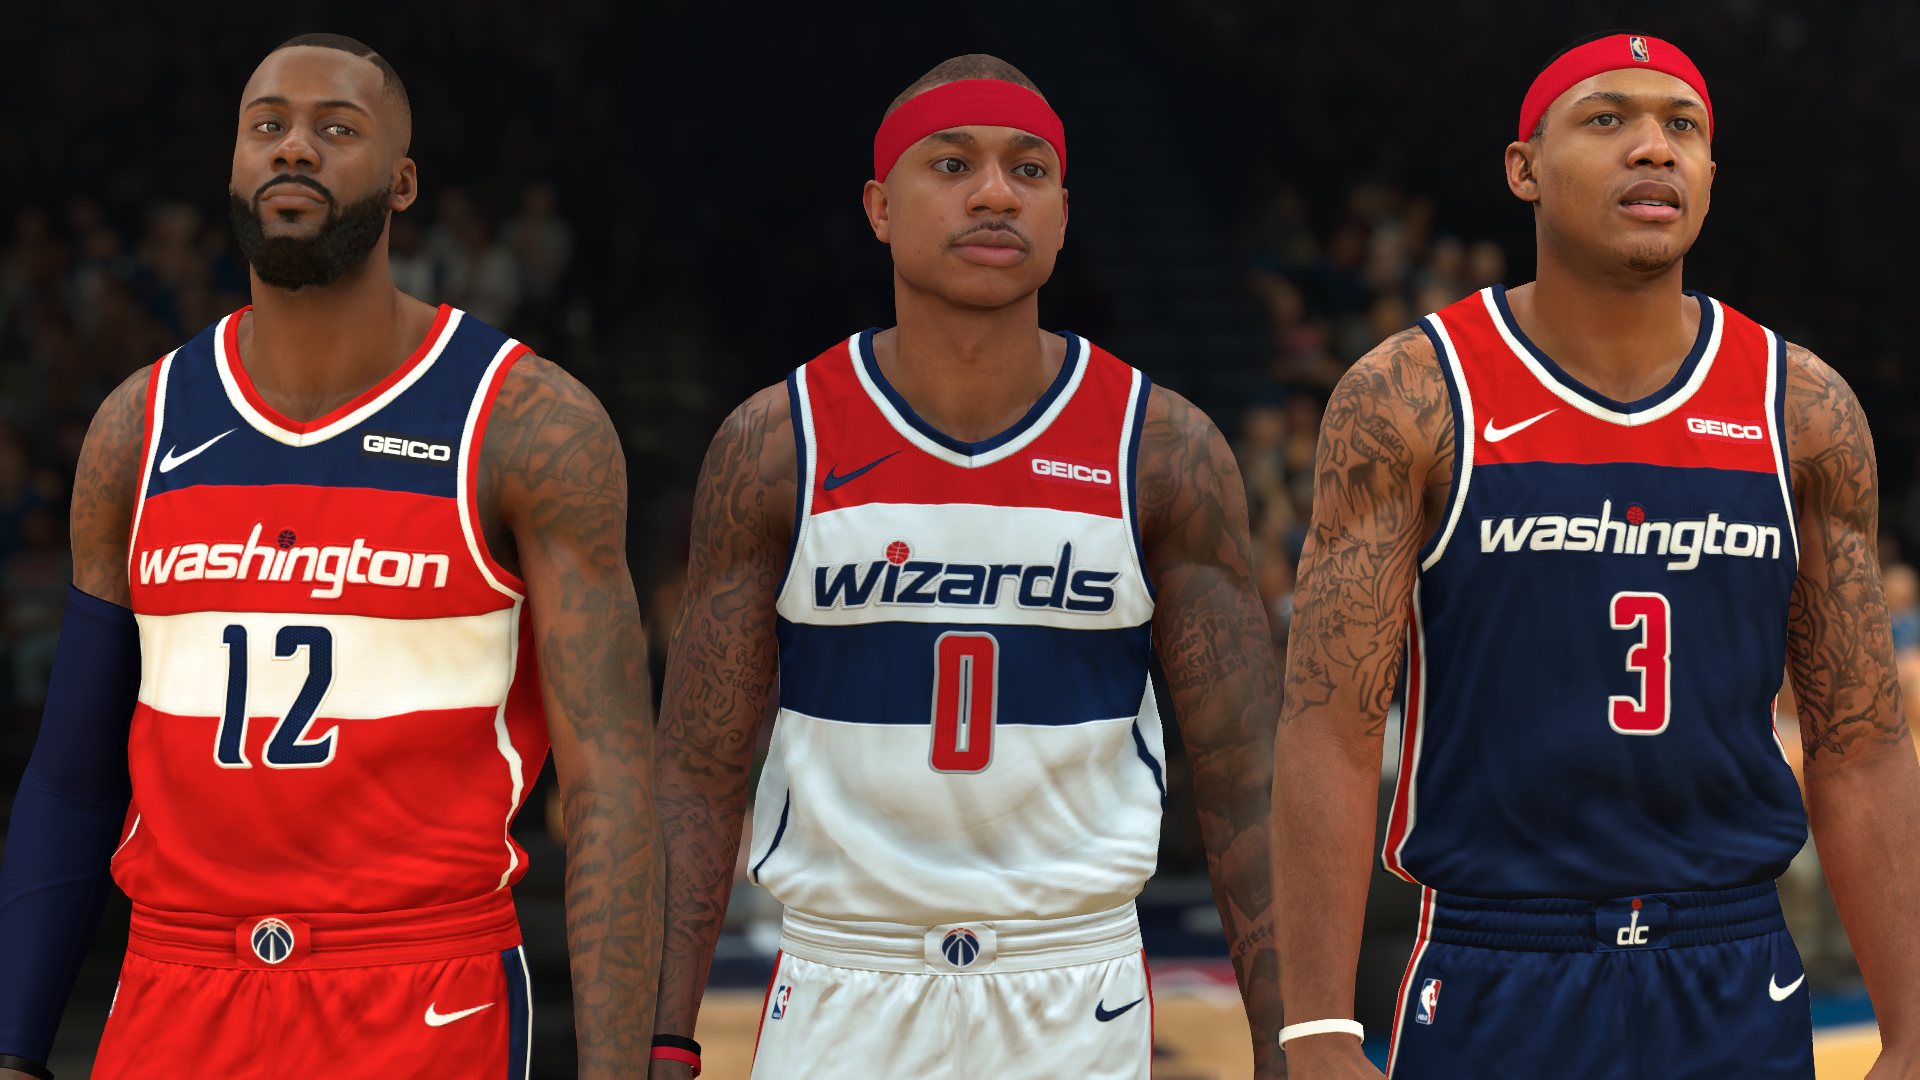 Washington Wizards Jersey (pinoy21)